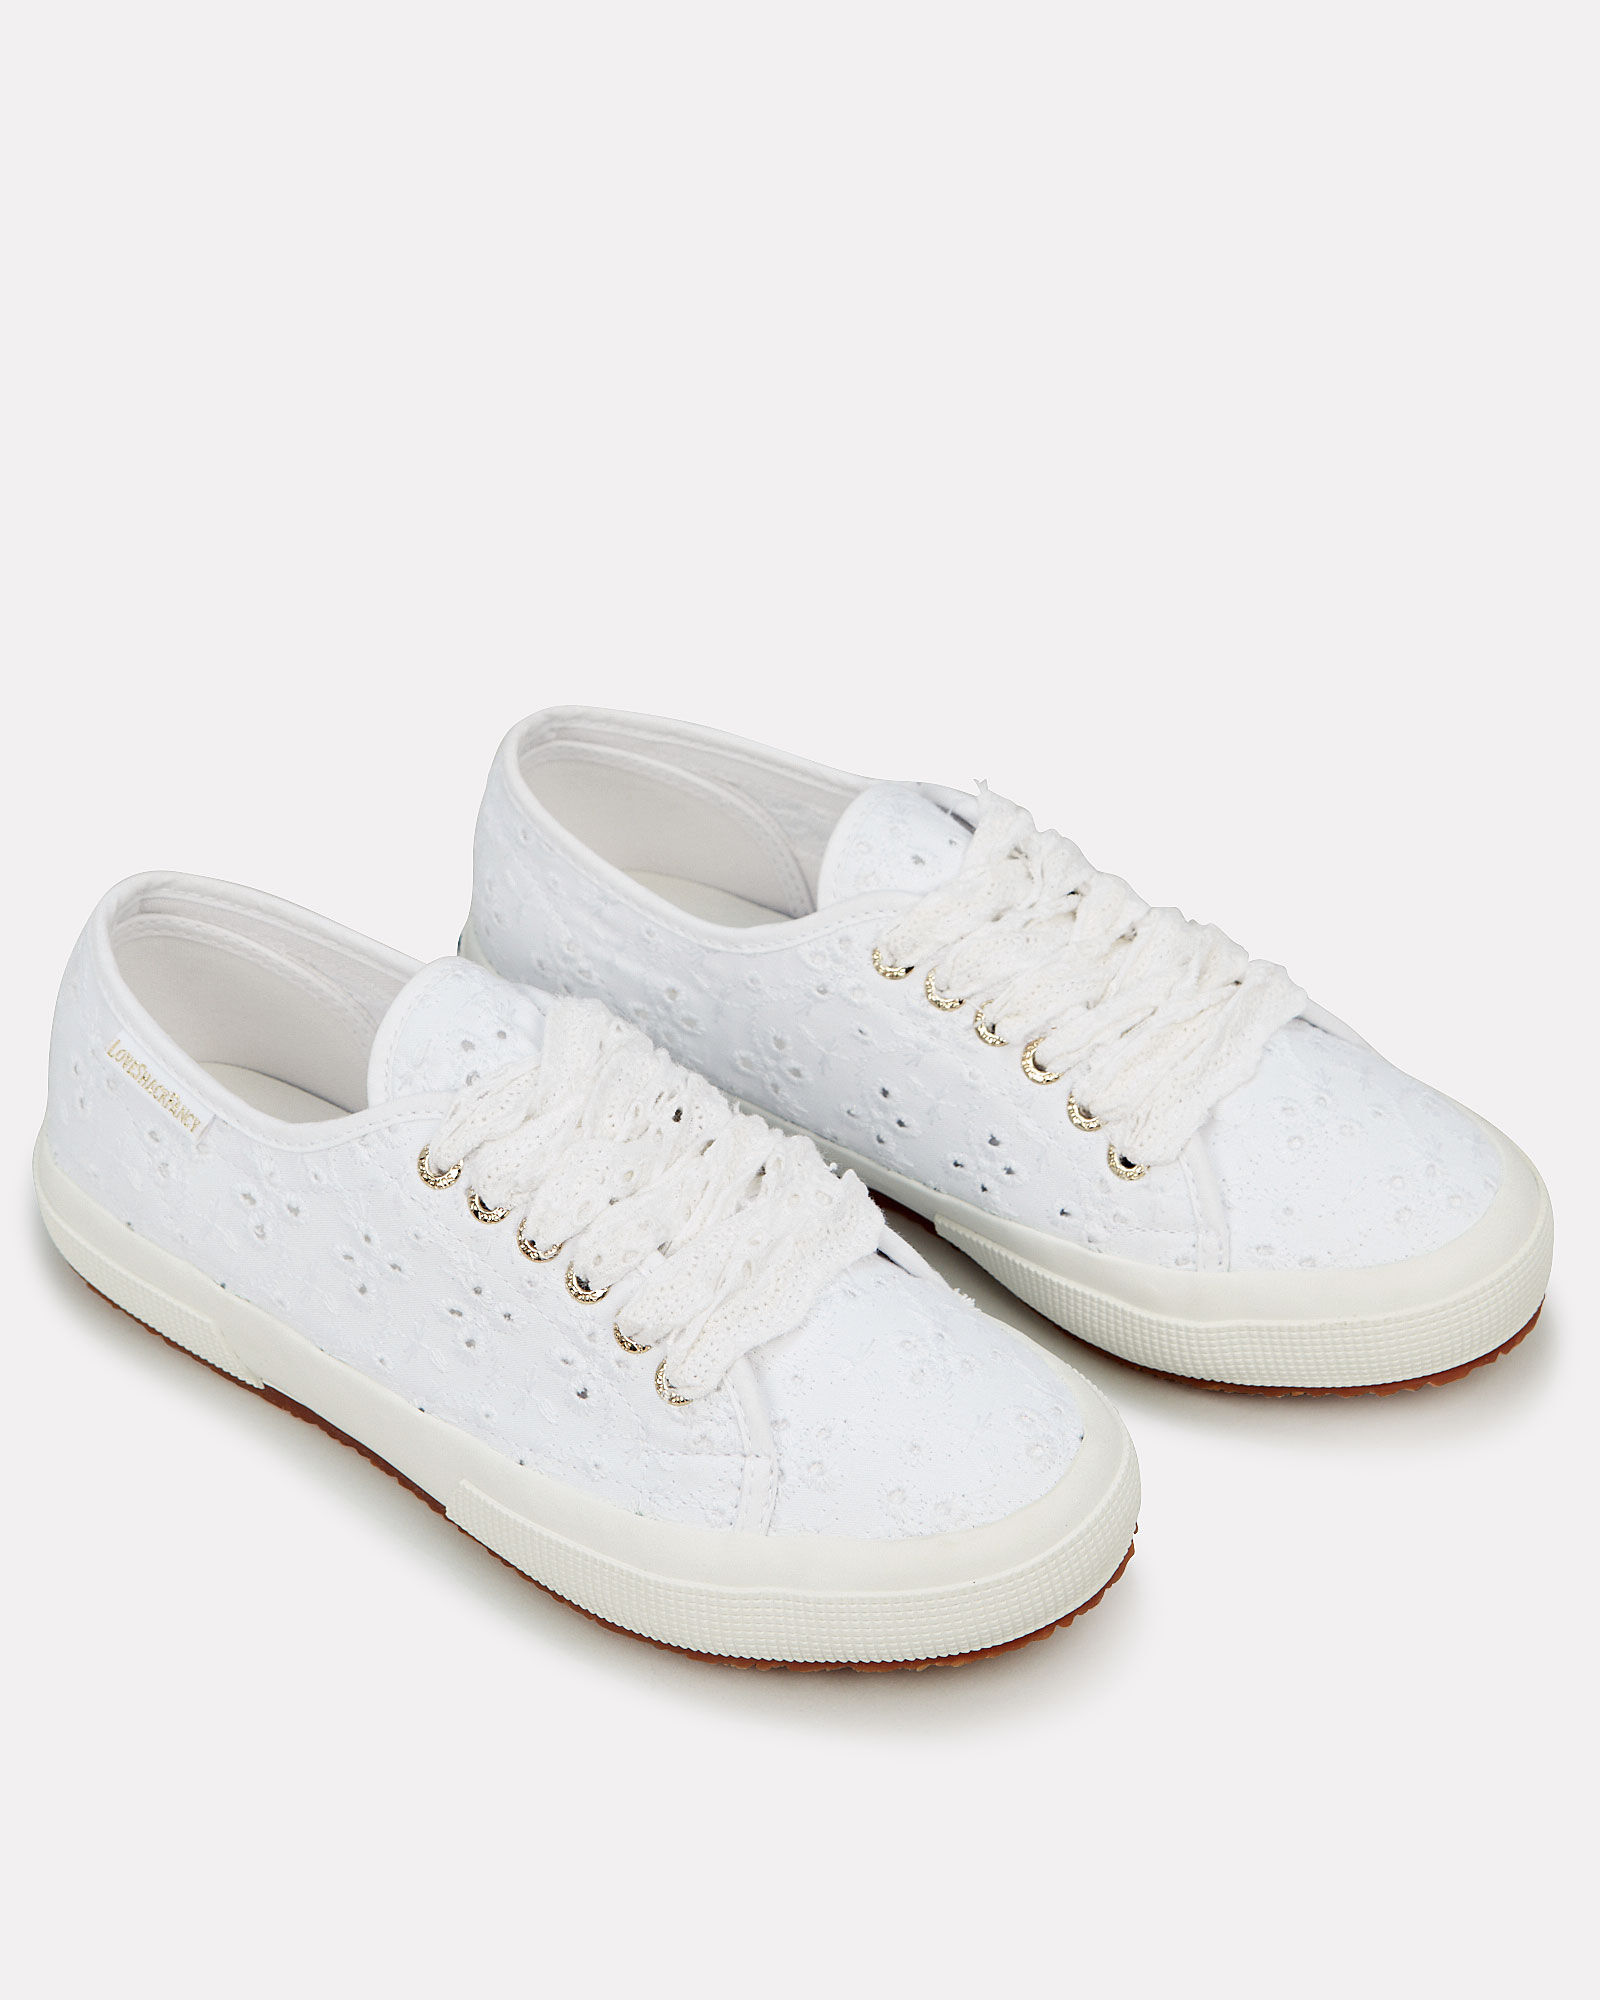 Superga x LoveShackFancy 2750 Sangallow Sneakers, WHITE, hi-res